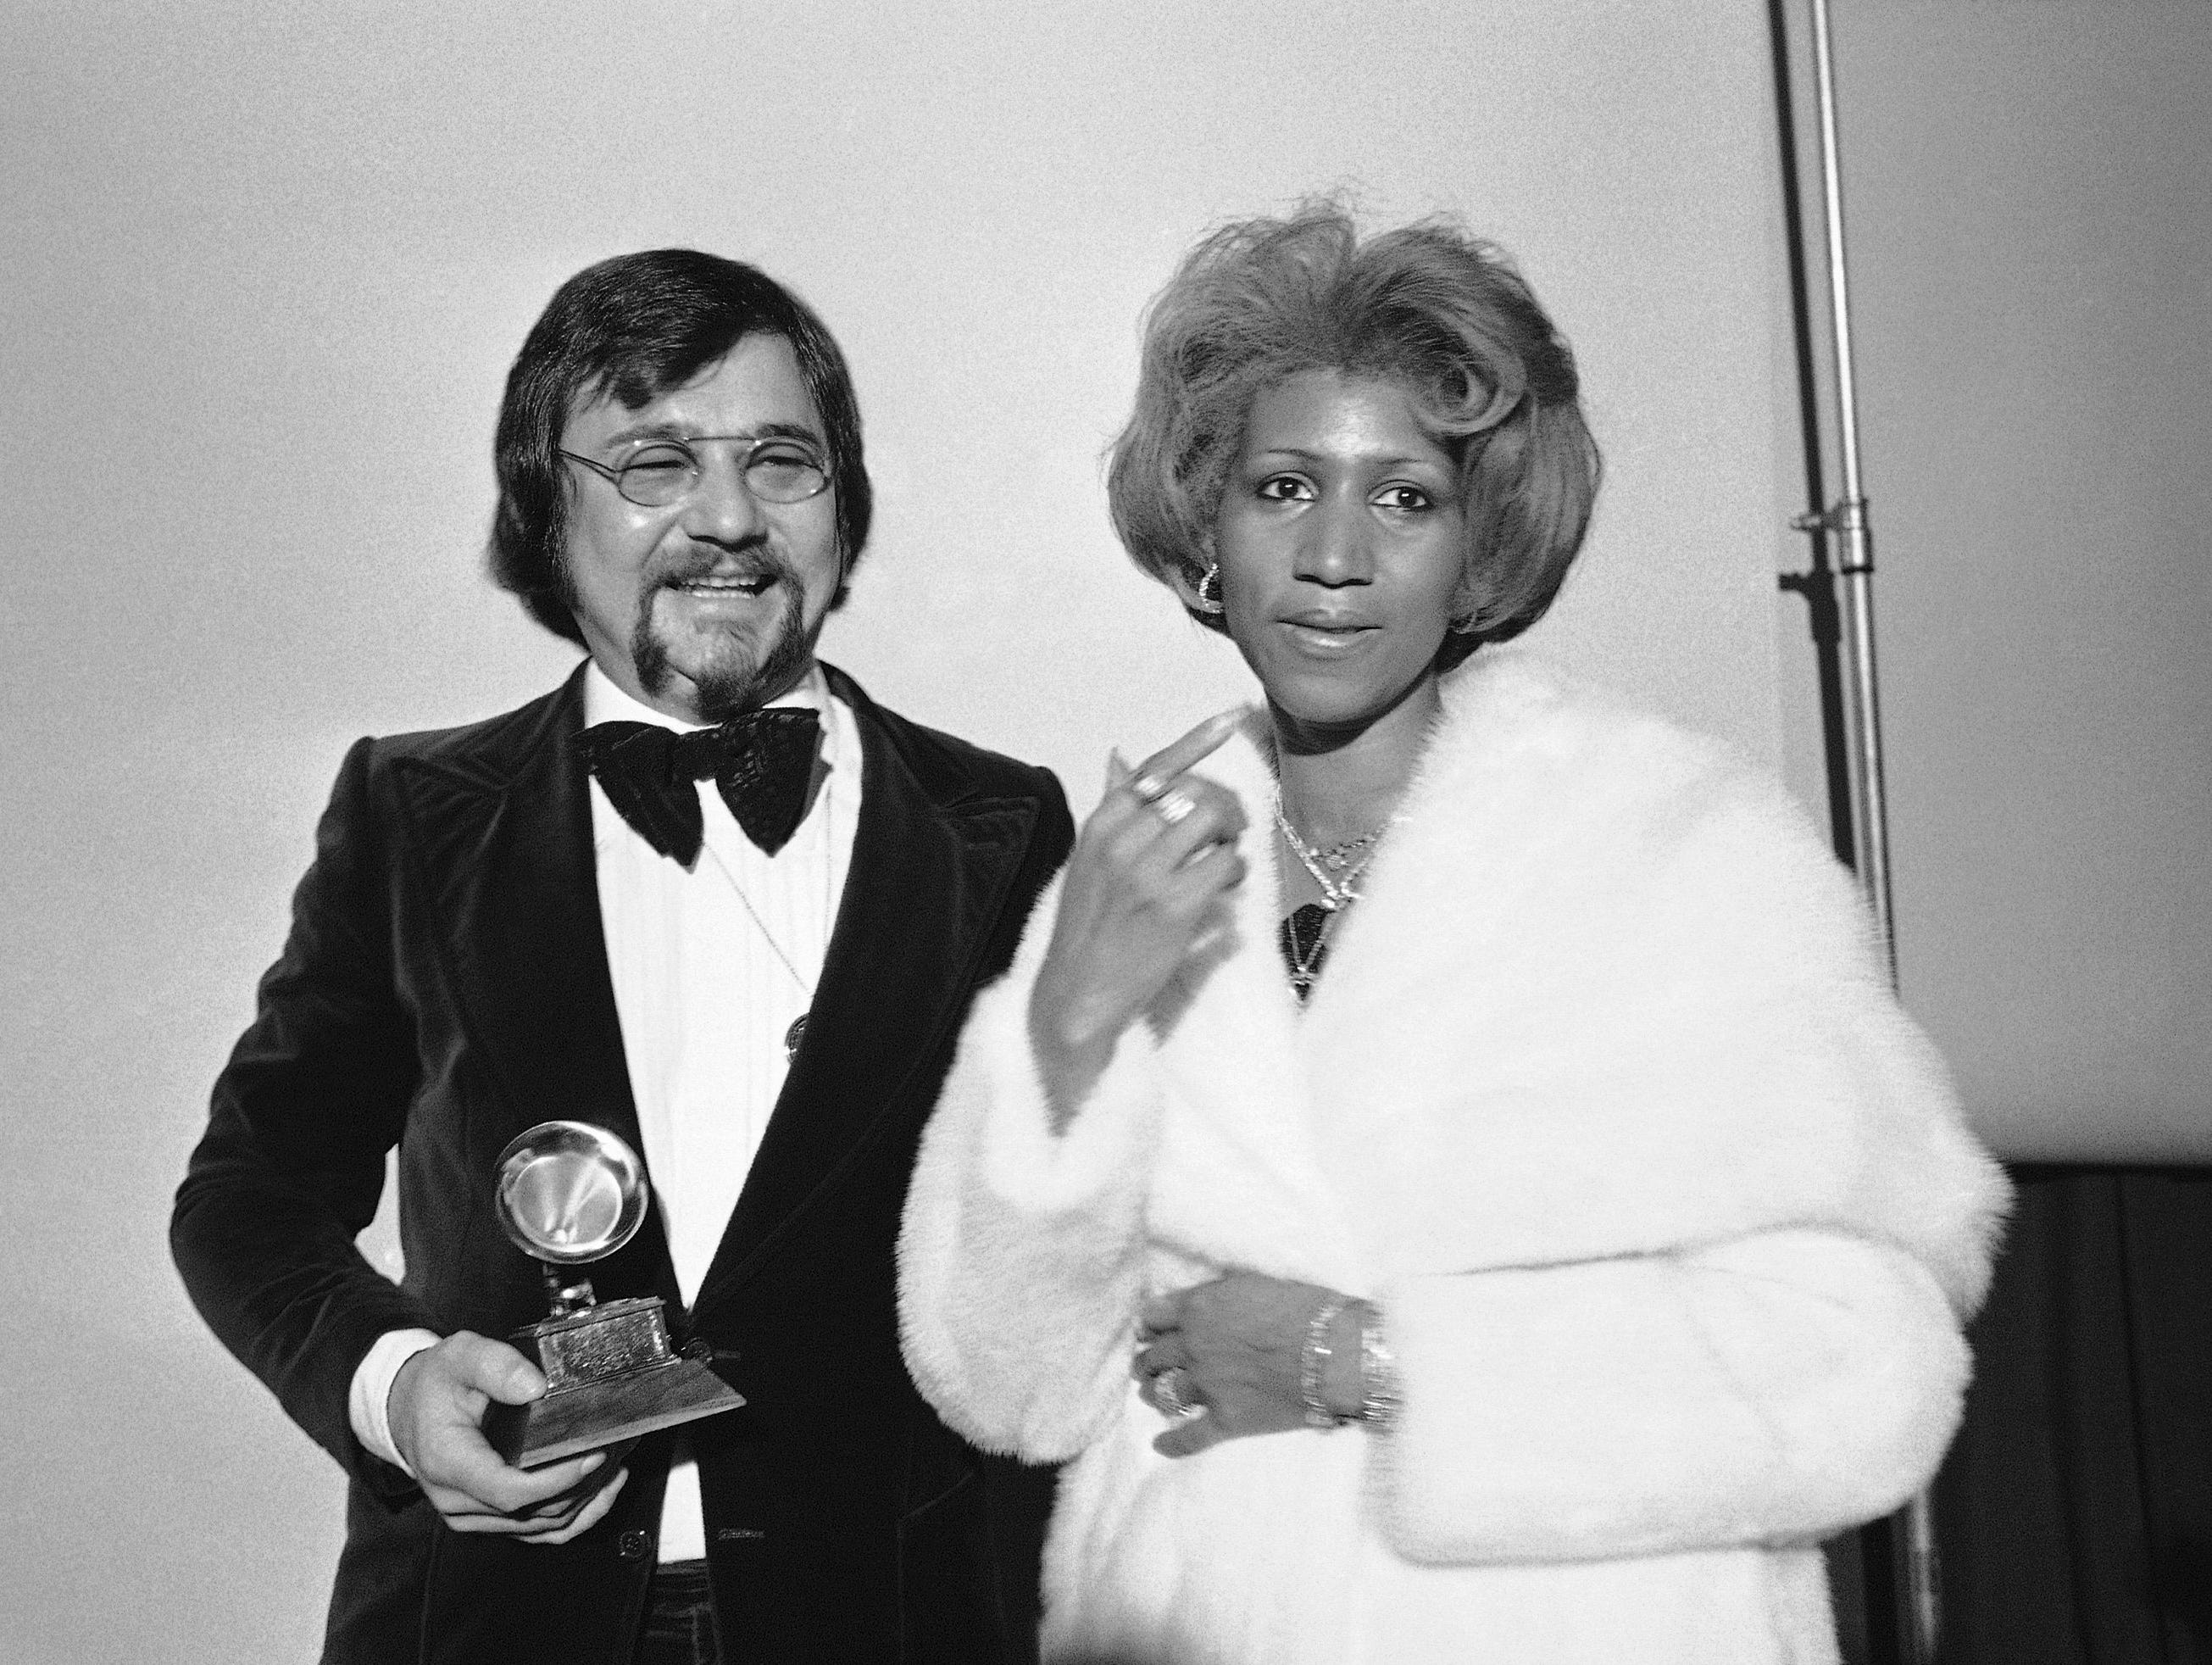 Sylvester Levay and Aretha Franklin,right, are shown at the Grammy Awards in Los Angeles, Feb. 28, 1976. (AP Photo)